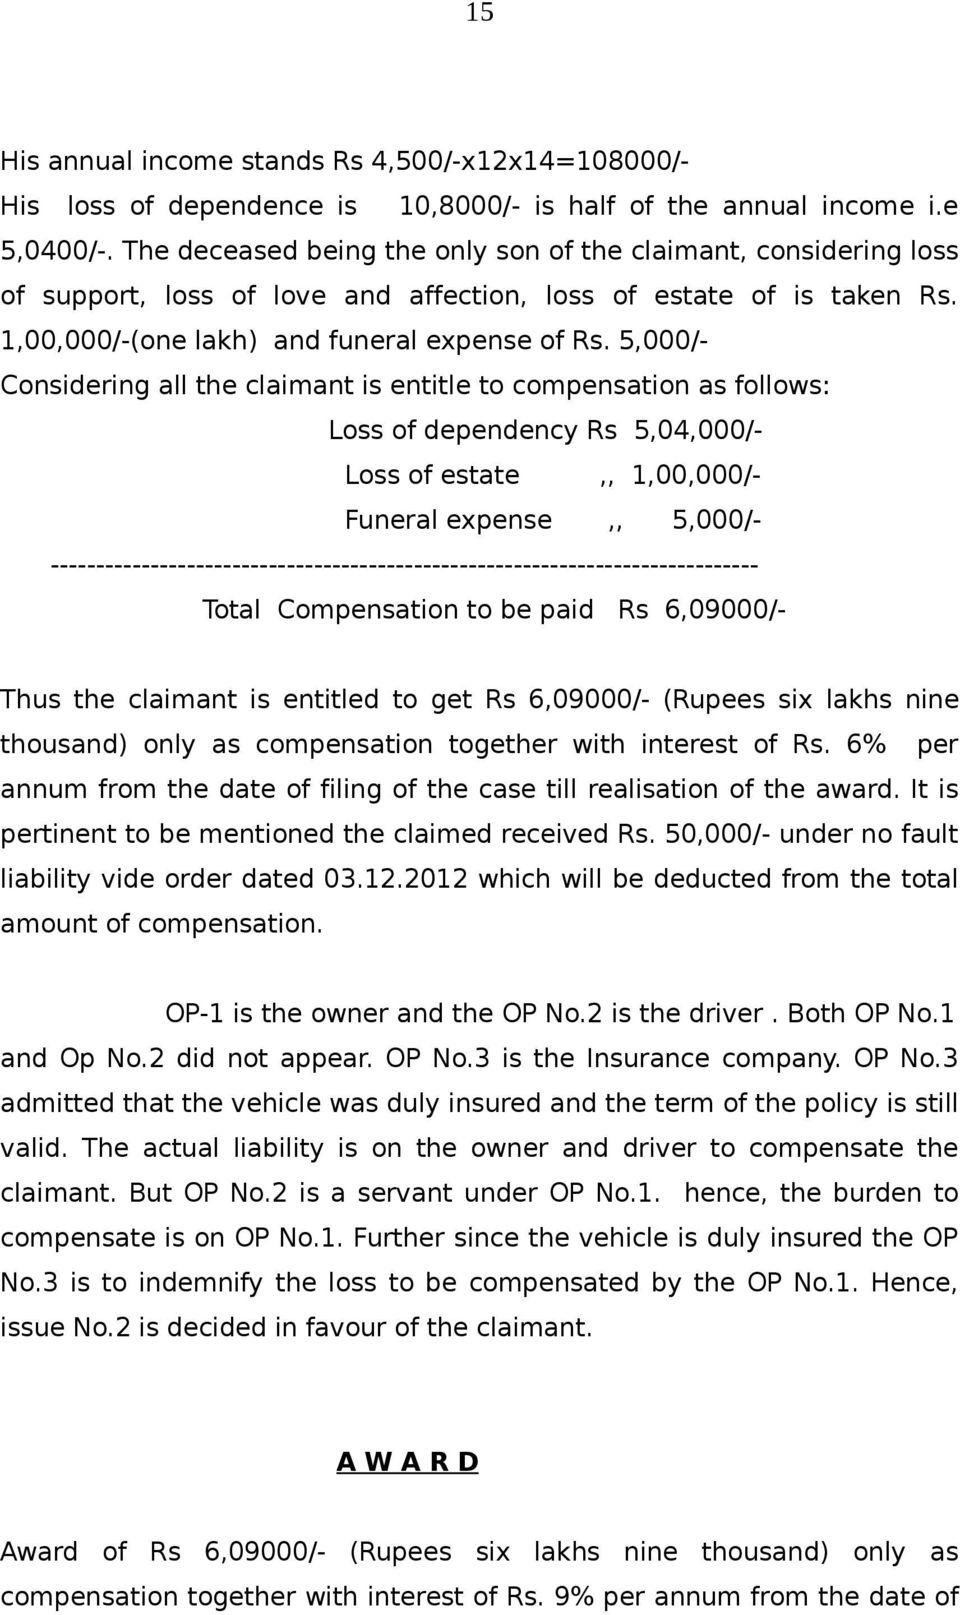 5,000/- Considering all the claimant is entitle to compensation as follows: Loss of dependency Rs 5,04,000/- Loss of estate,, 1,00,000/- Funeral expense,, 5,000/-